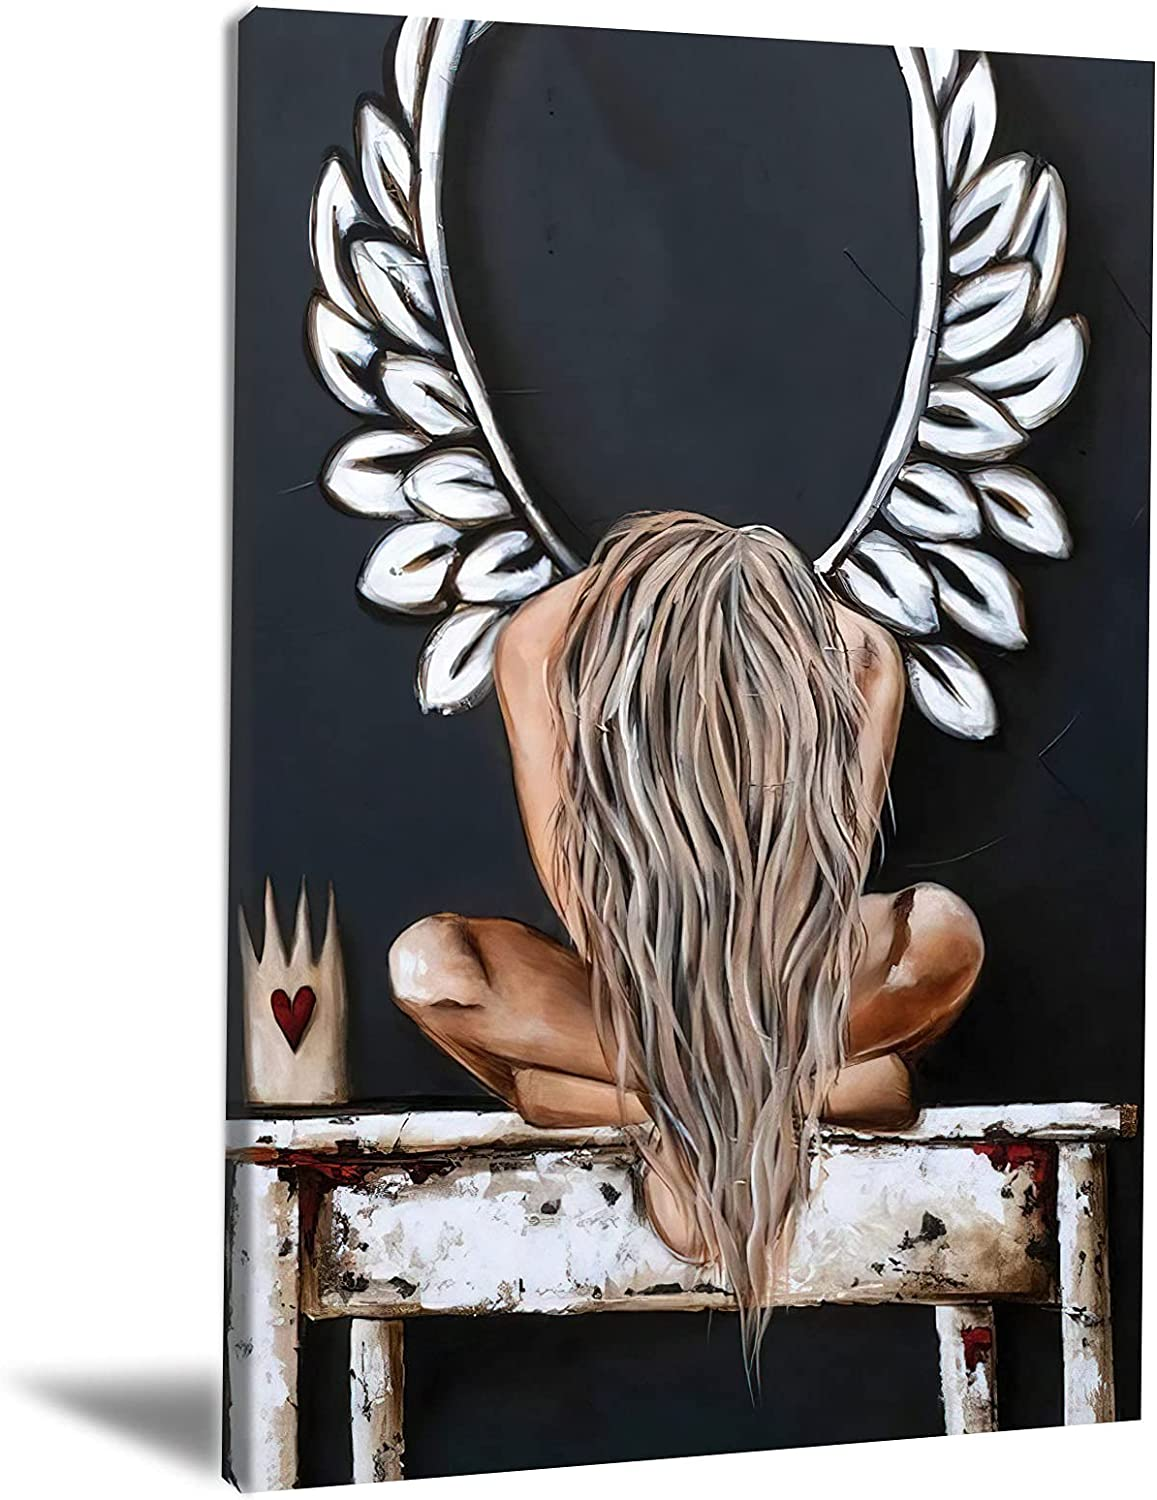 Angels Art Wall Decor Fantasy Weeping Angel Wings Wall Pictures Print The Darkest Days Wall Art Pictures Posters and Prints Artwork Decor for Living Room Bedroom Office No Frame